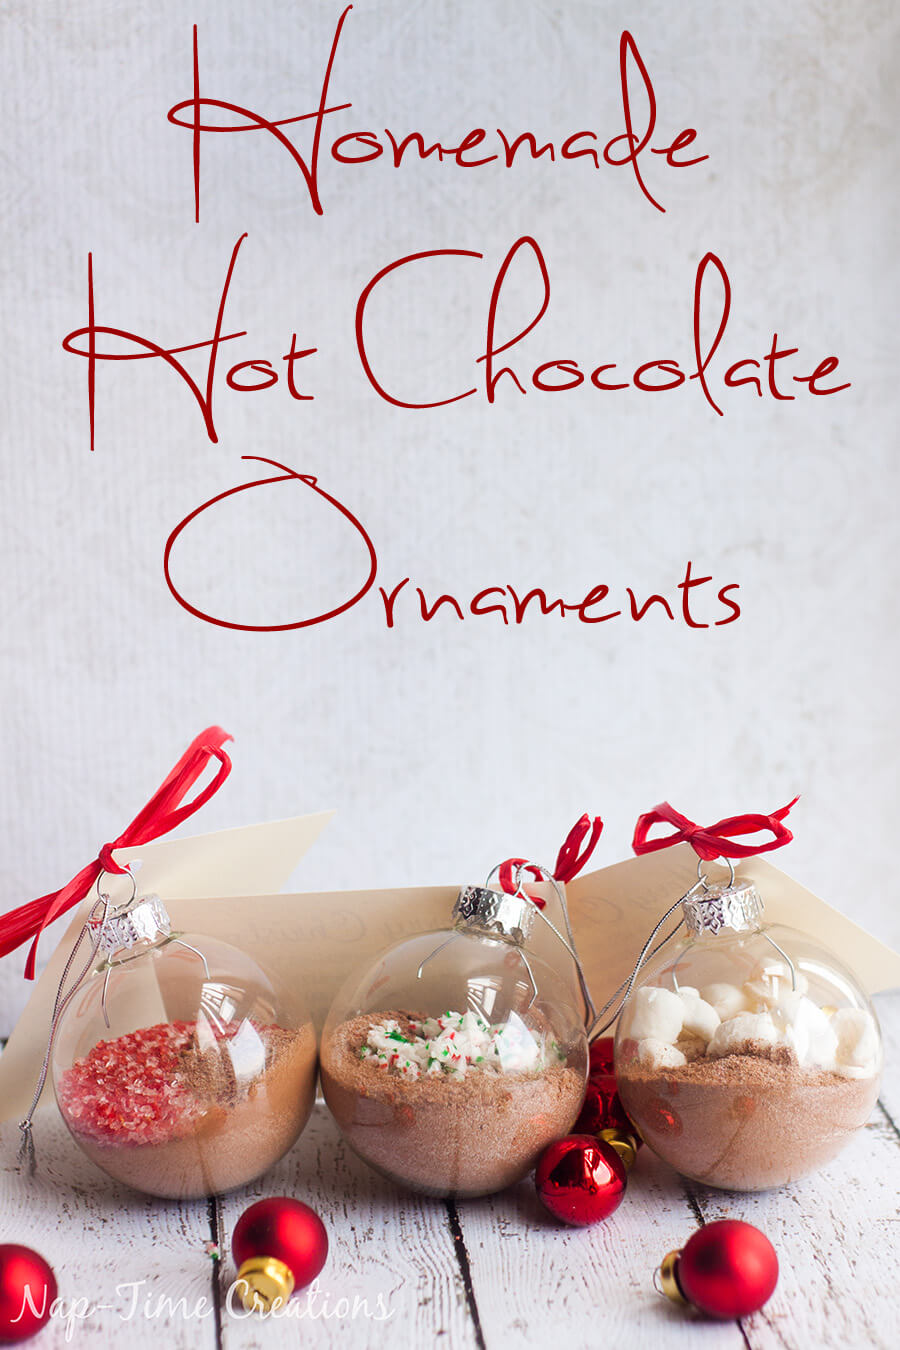 Homemade Hot Chocolate Ornament Gift and Recipe from Nap-Time Creations